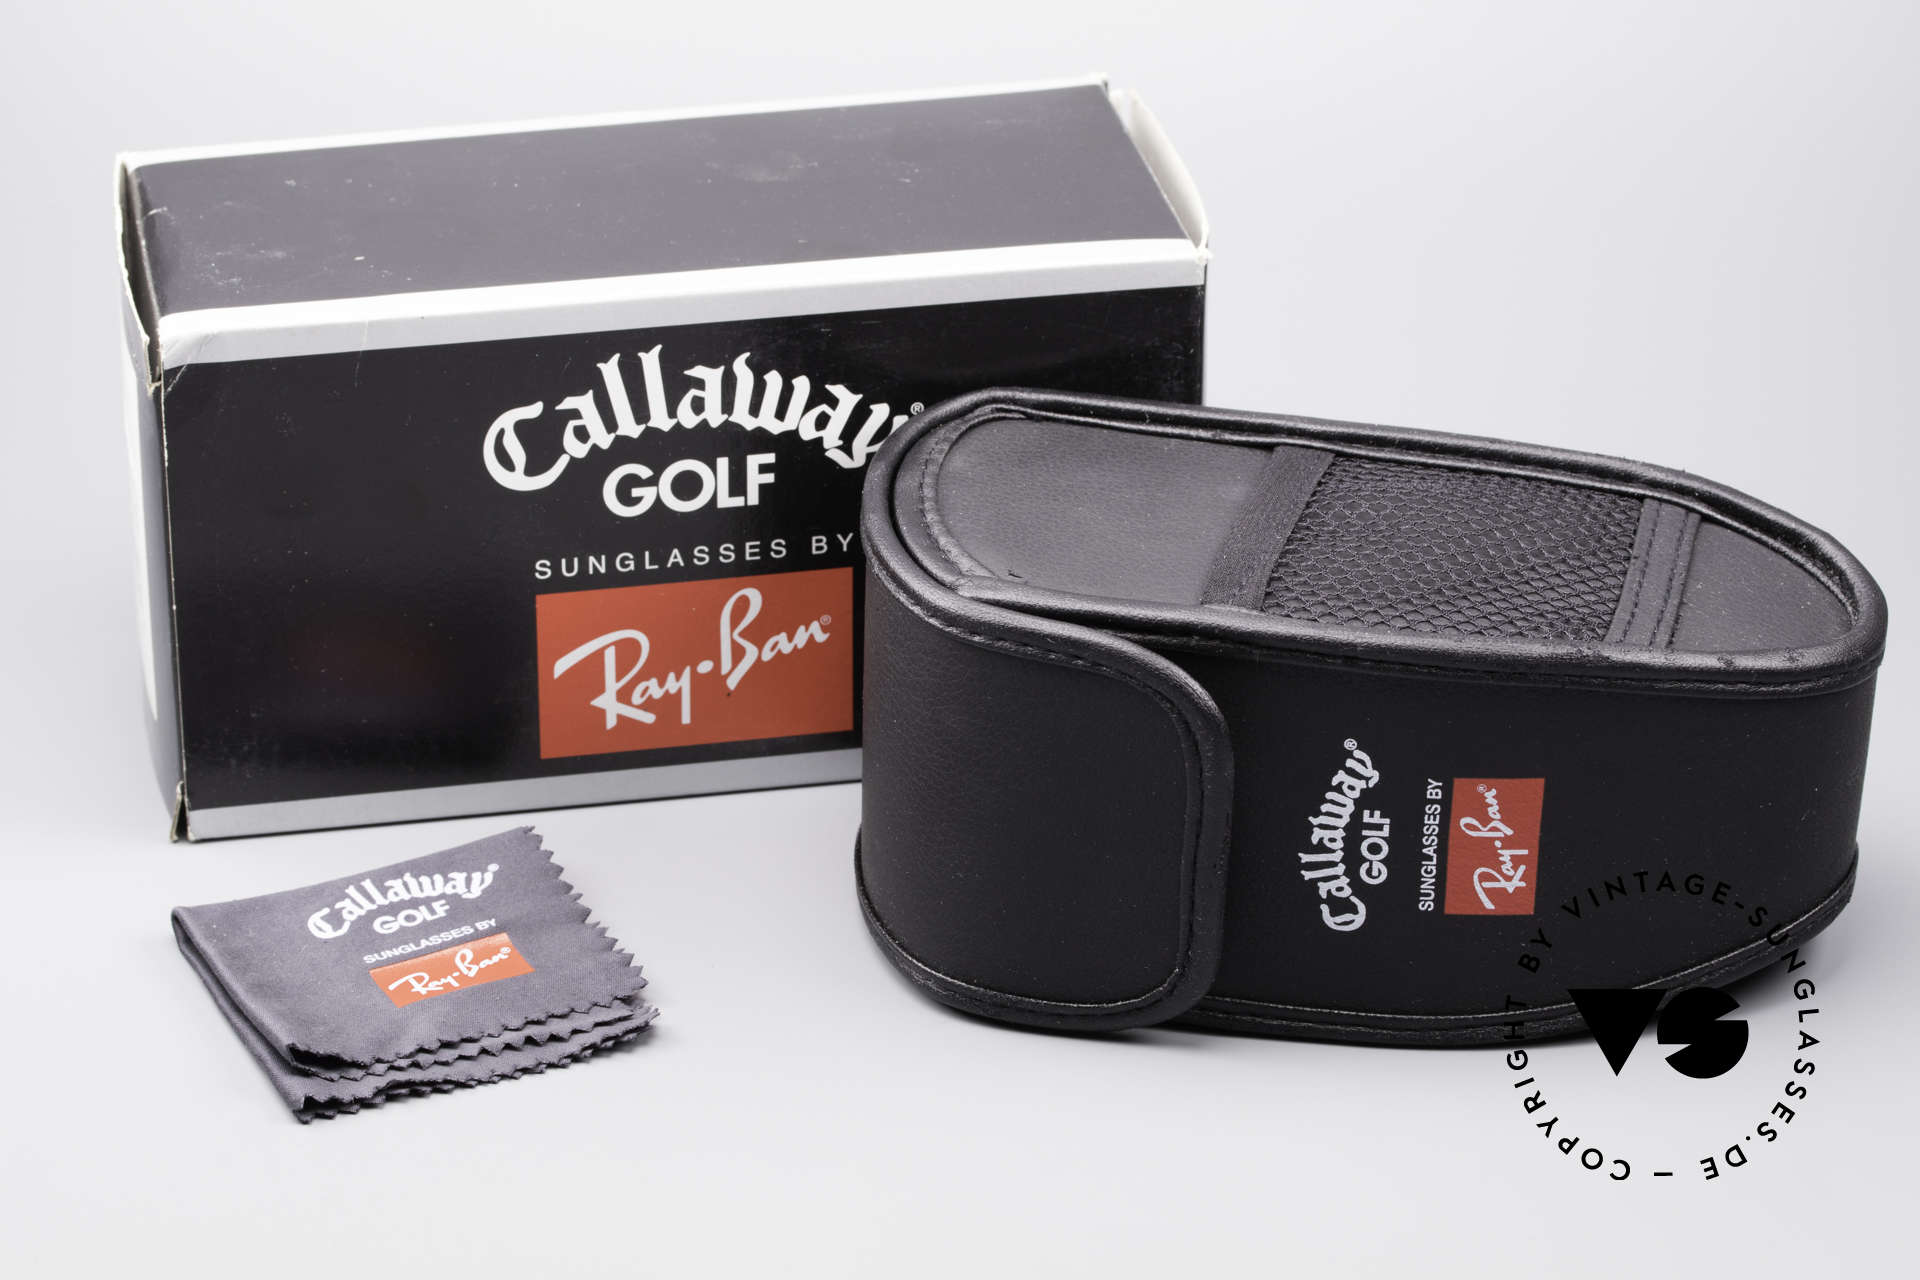 Ray Ban B0005 Callaway Vintage Golf Sunglasses, NO RETRO sunglasses, but a rare vintage 90's ORIGINAL, Made for Men